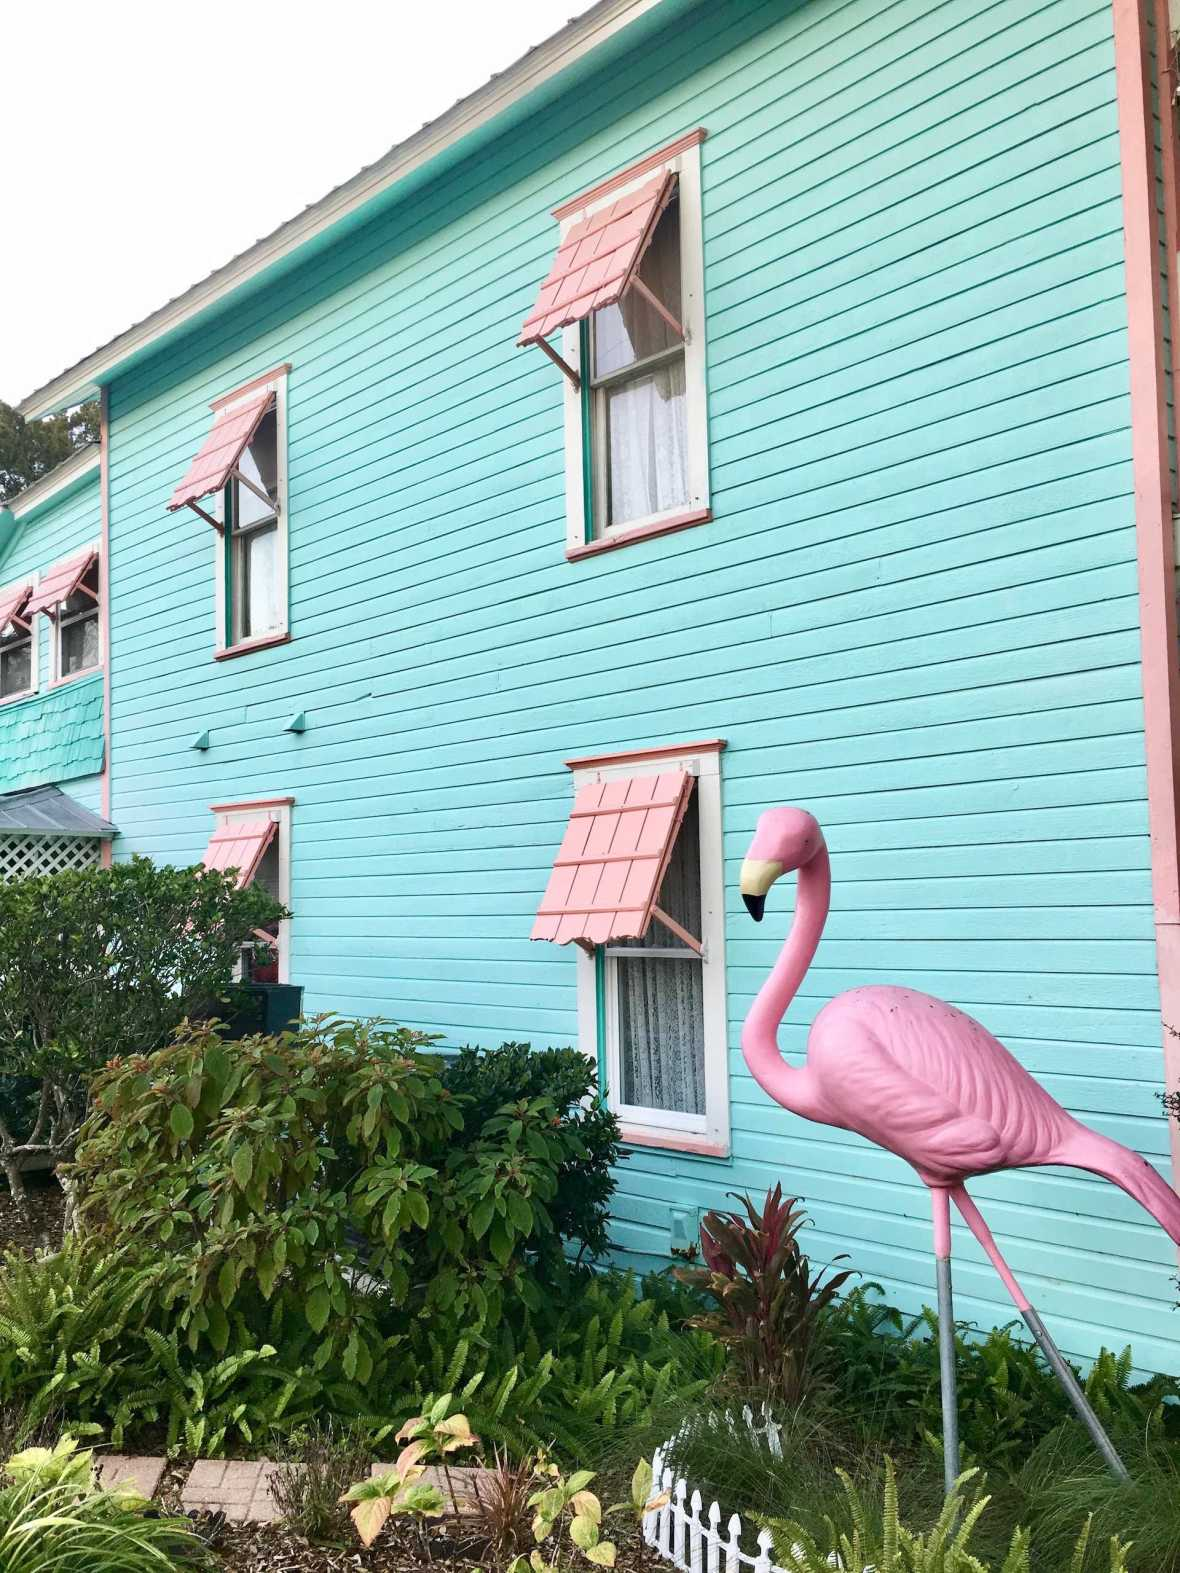 Giant flamingo, Cedar Key Bed & Breakfast